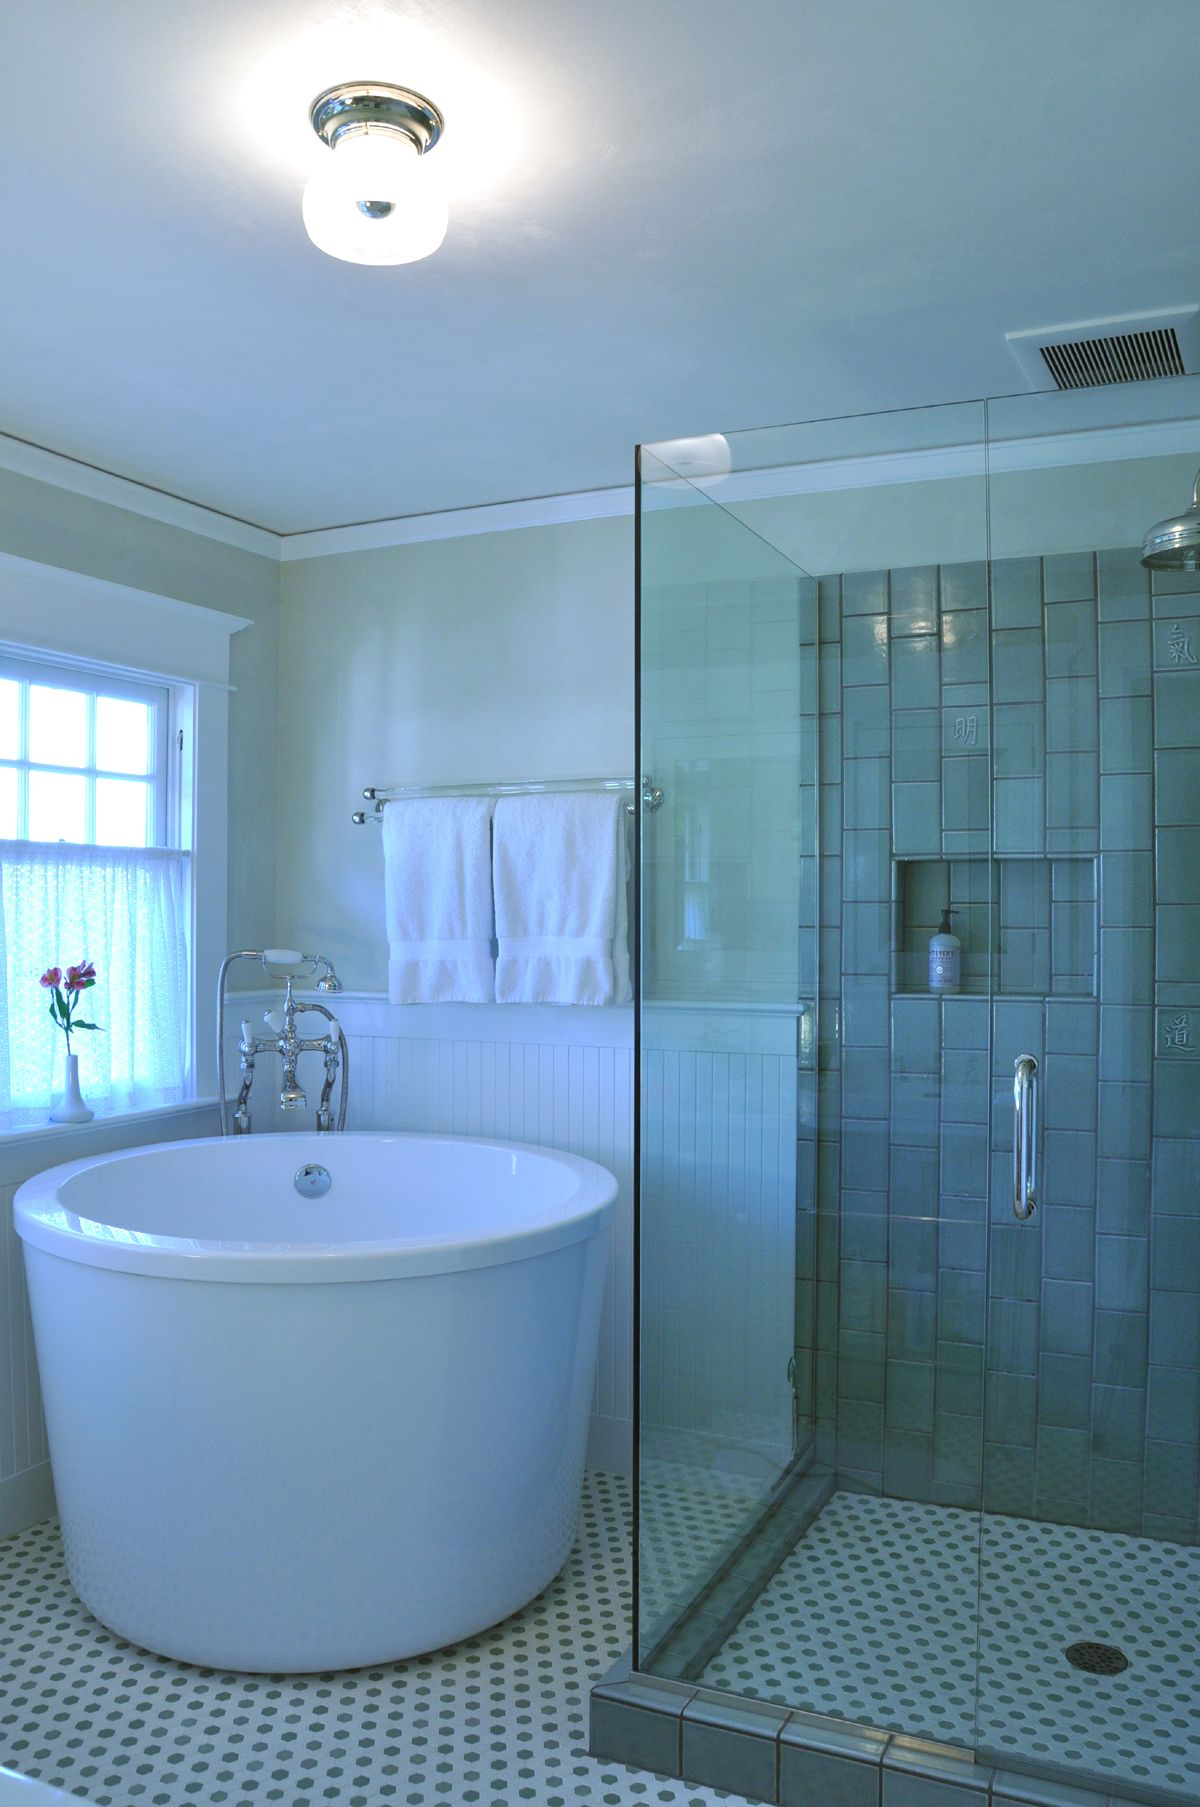 Japanese Soaking Tub In Master Bathroom For Recent Remodel Project One Of My Favorite Bathrooms